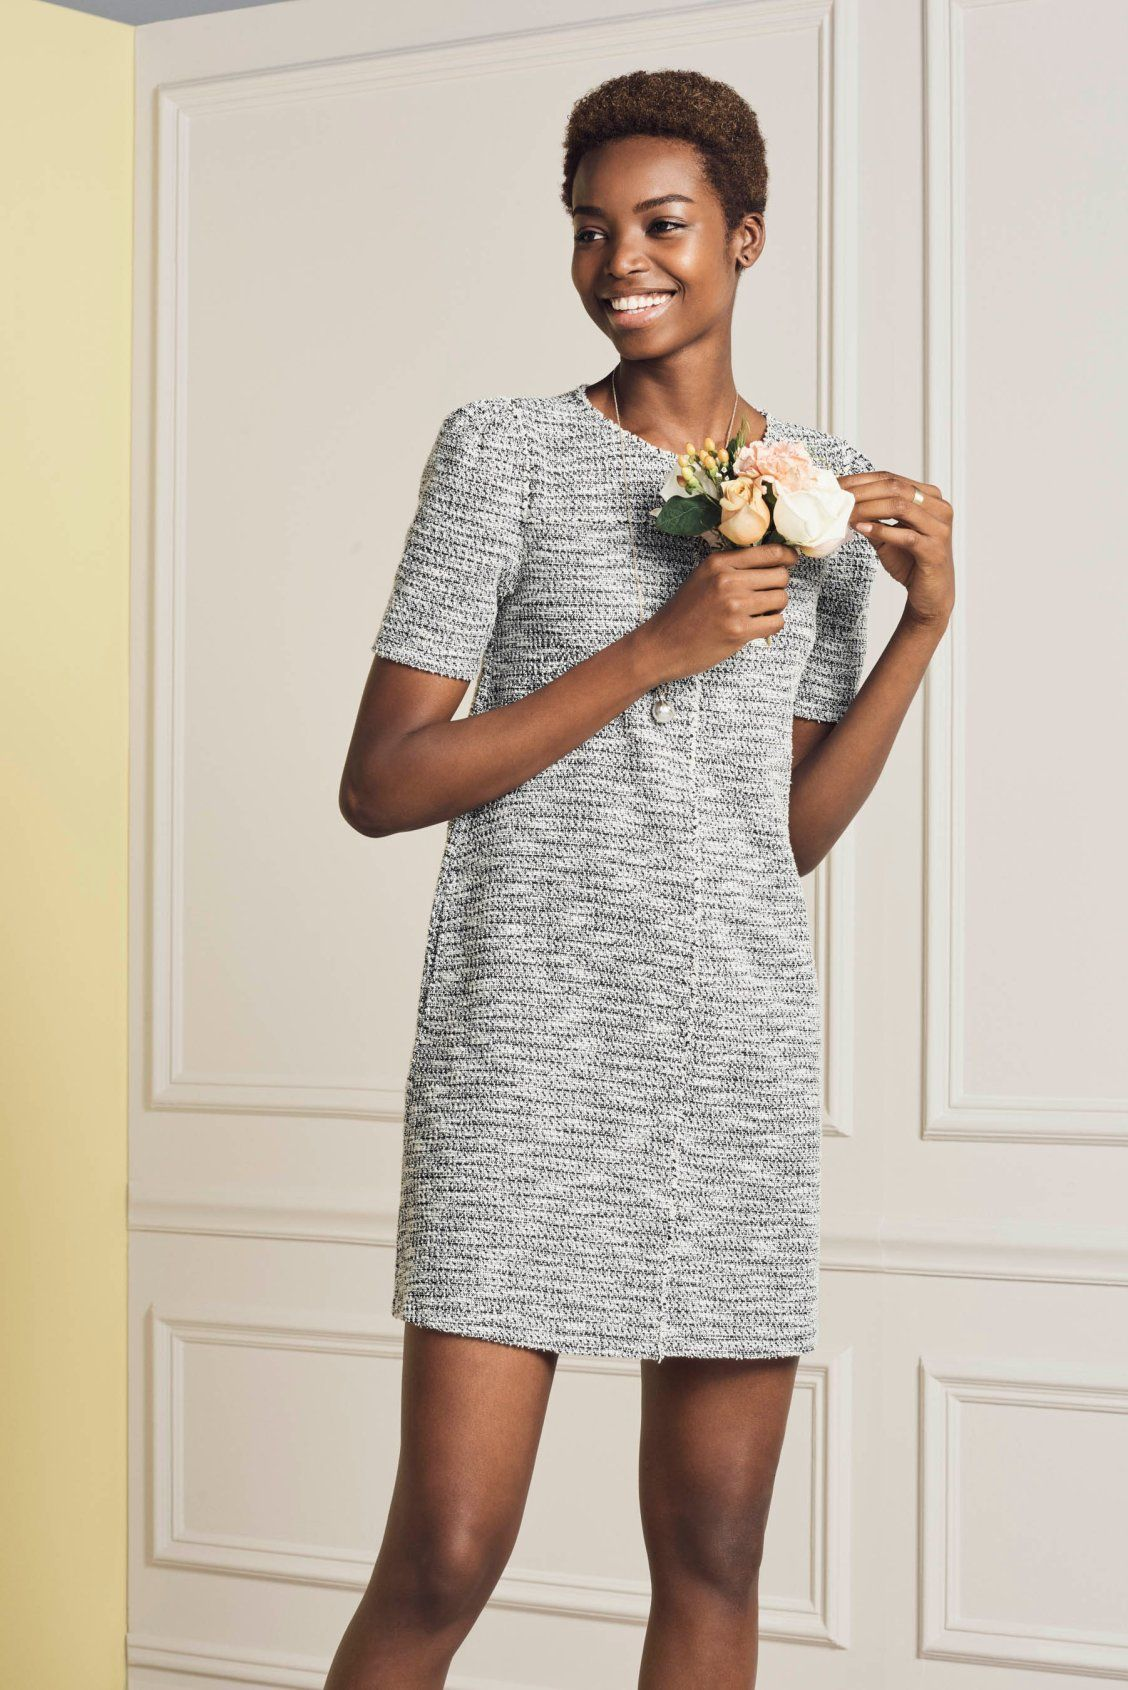 This easy shift dress is where uptown chic meets downtown cool